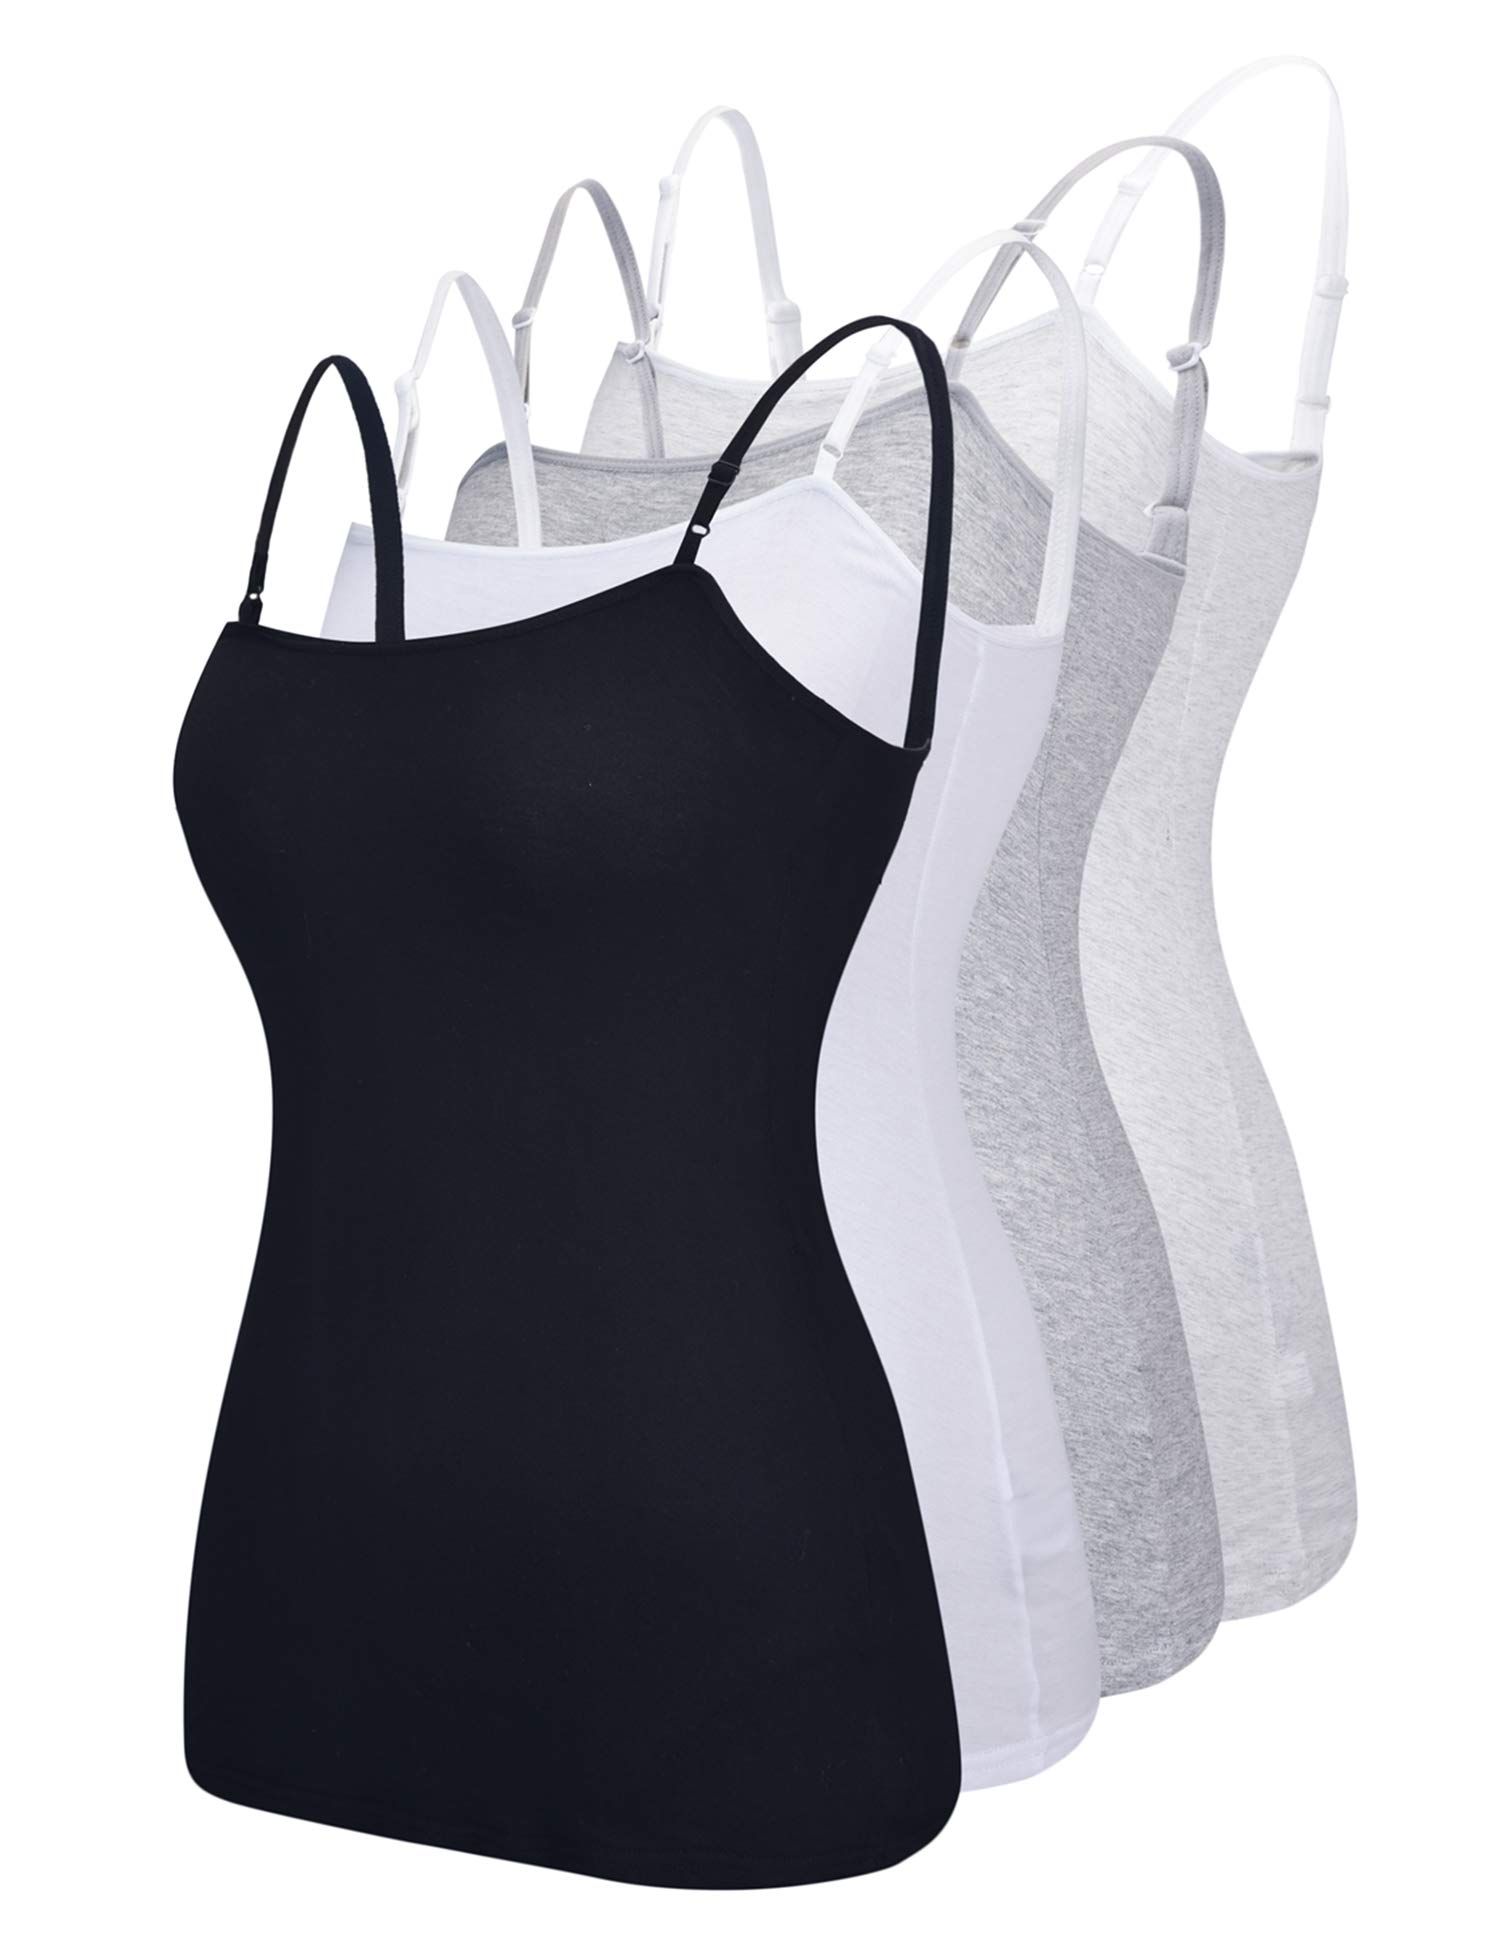 Suntasty 4 Pack Cami Women's Basic Casual Long Adjustable Spaghetti Strap Camisole Tank Top Black White Grey Light Grey S